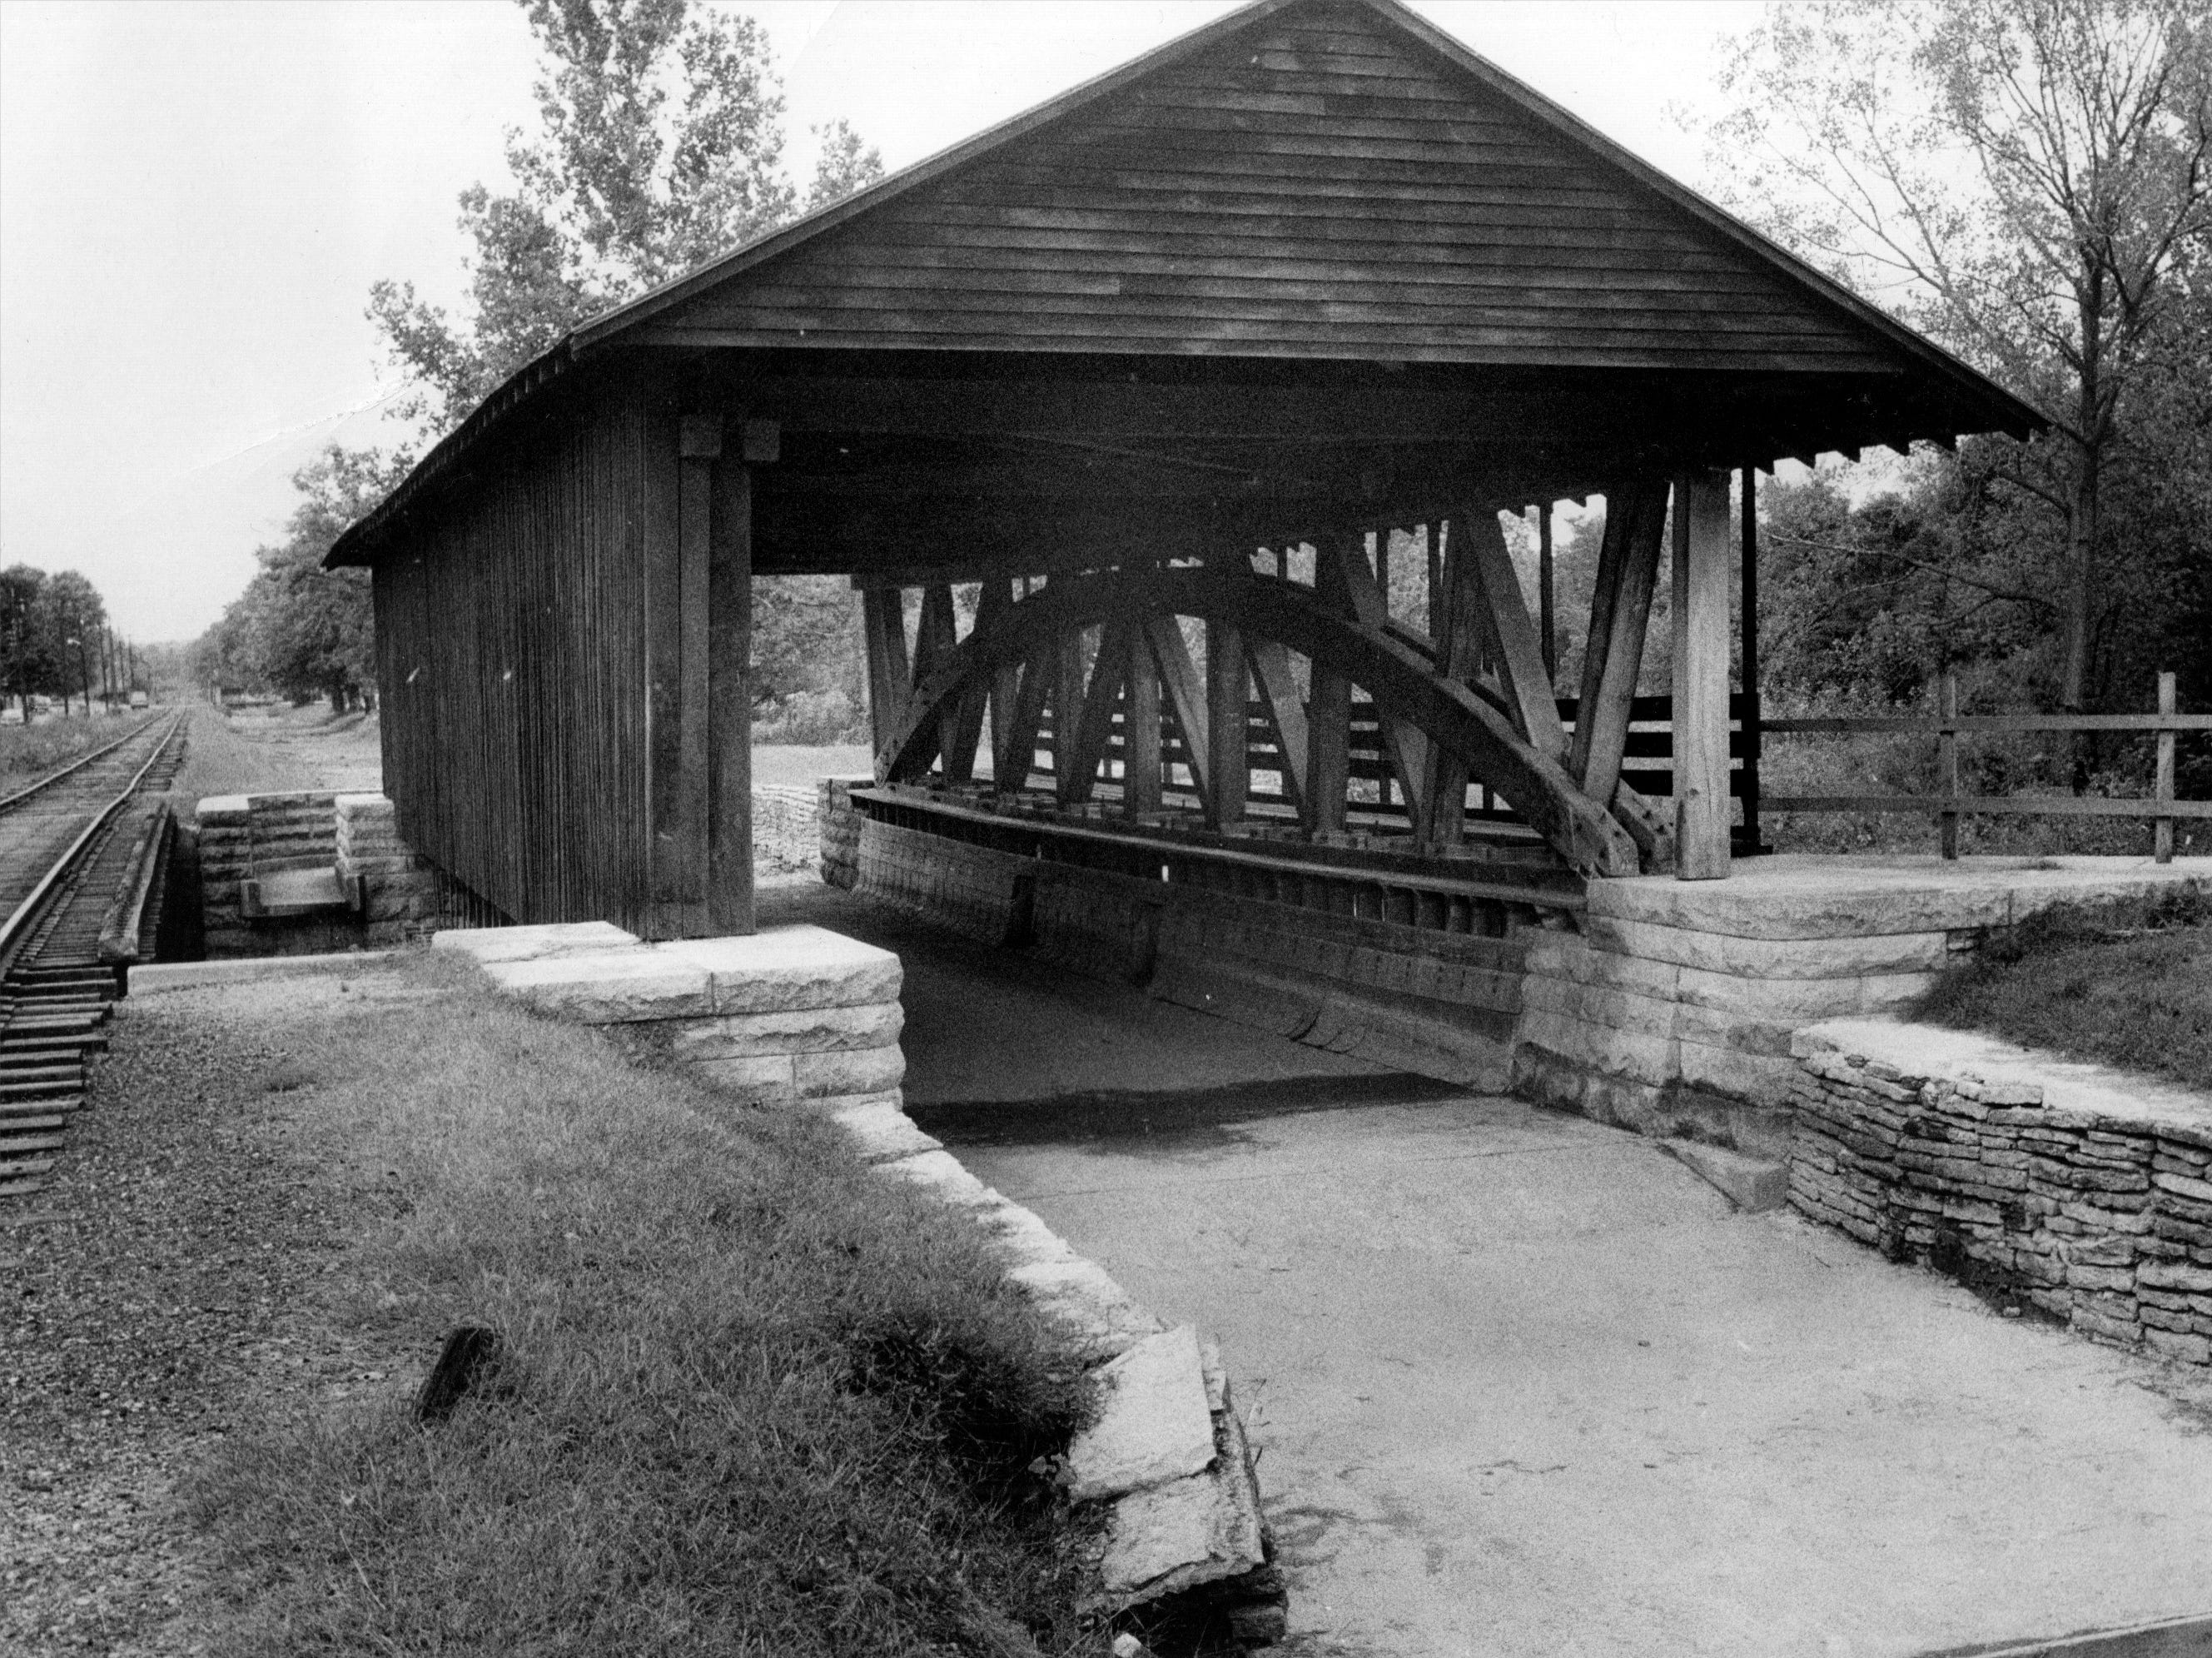 Instead of being built to carry traffic over a stream, this bridge built in 1840s in Brookville was built to carry the Whitewater Canal over the west fork of Whitewater River at the east edge of Metamora. Photo taken in 1968.